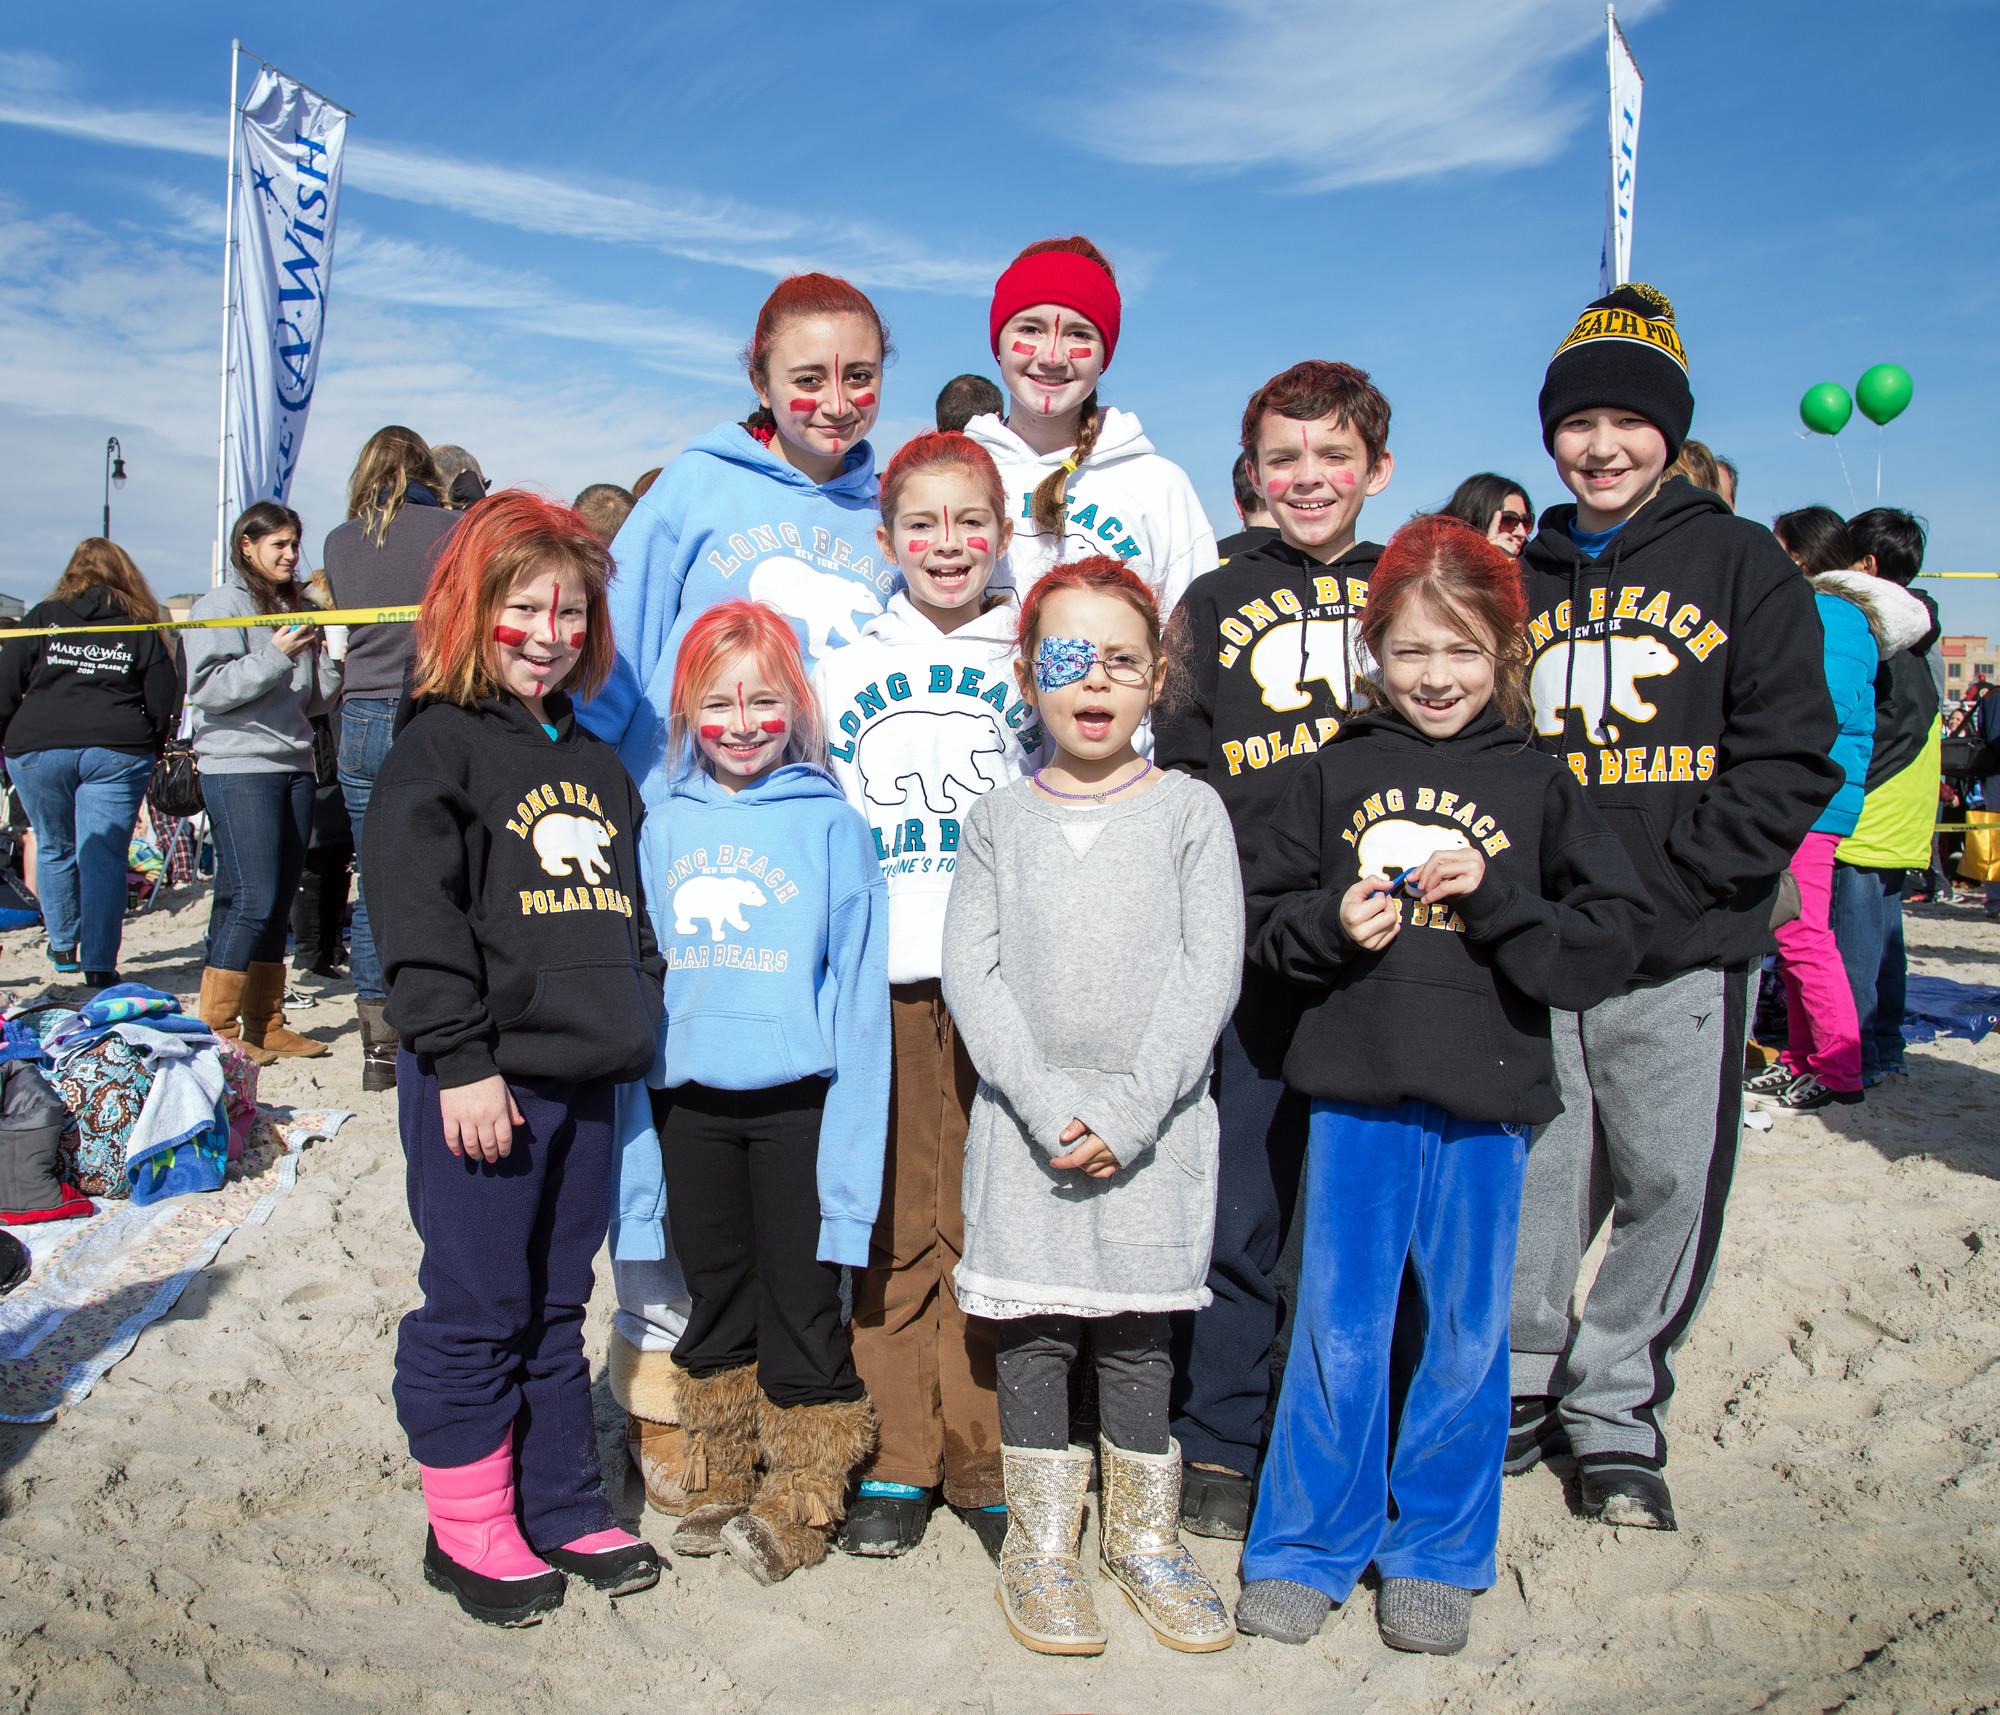 Sean Nidermaier, 11, top, second from right, received a wish five years ago, and has come to the Polar Bear Splash every year since. Friends and family who joined him this year included, clockwise from top left, Kristen Granieri, 14, Emma Nidermaie, 14, Matthew Loftus, 11, Ava Loftus, 6, Braidy Nidermaier, 6, Caitlin Nidermaier, 9, Mikayla Haberlack, 6, and Alyssa Haberlack, 8.